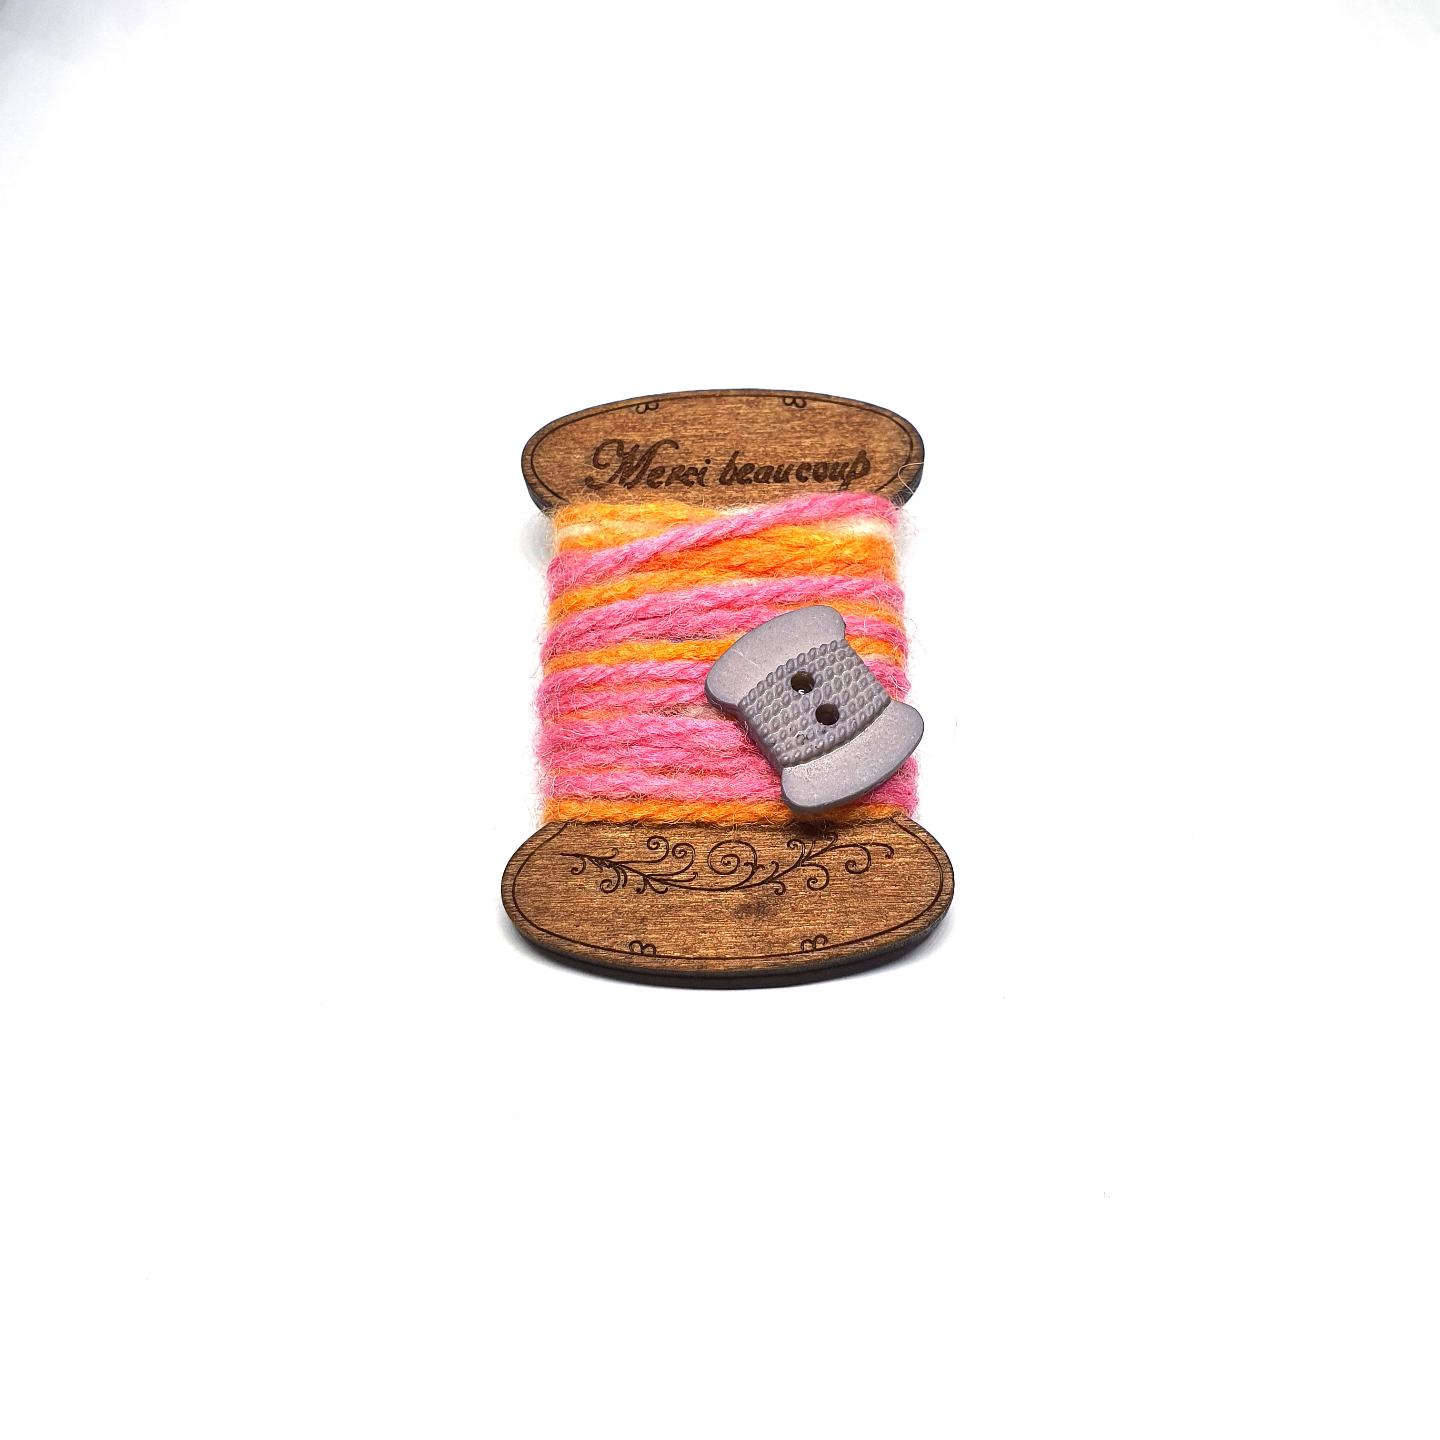 Handmade Brooch: Flat Thread Spool (Striped Pink) by Doe & Audrey